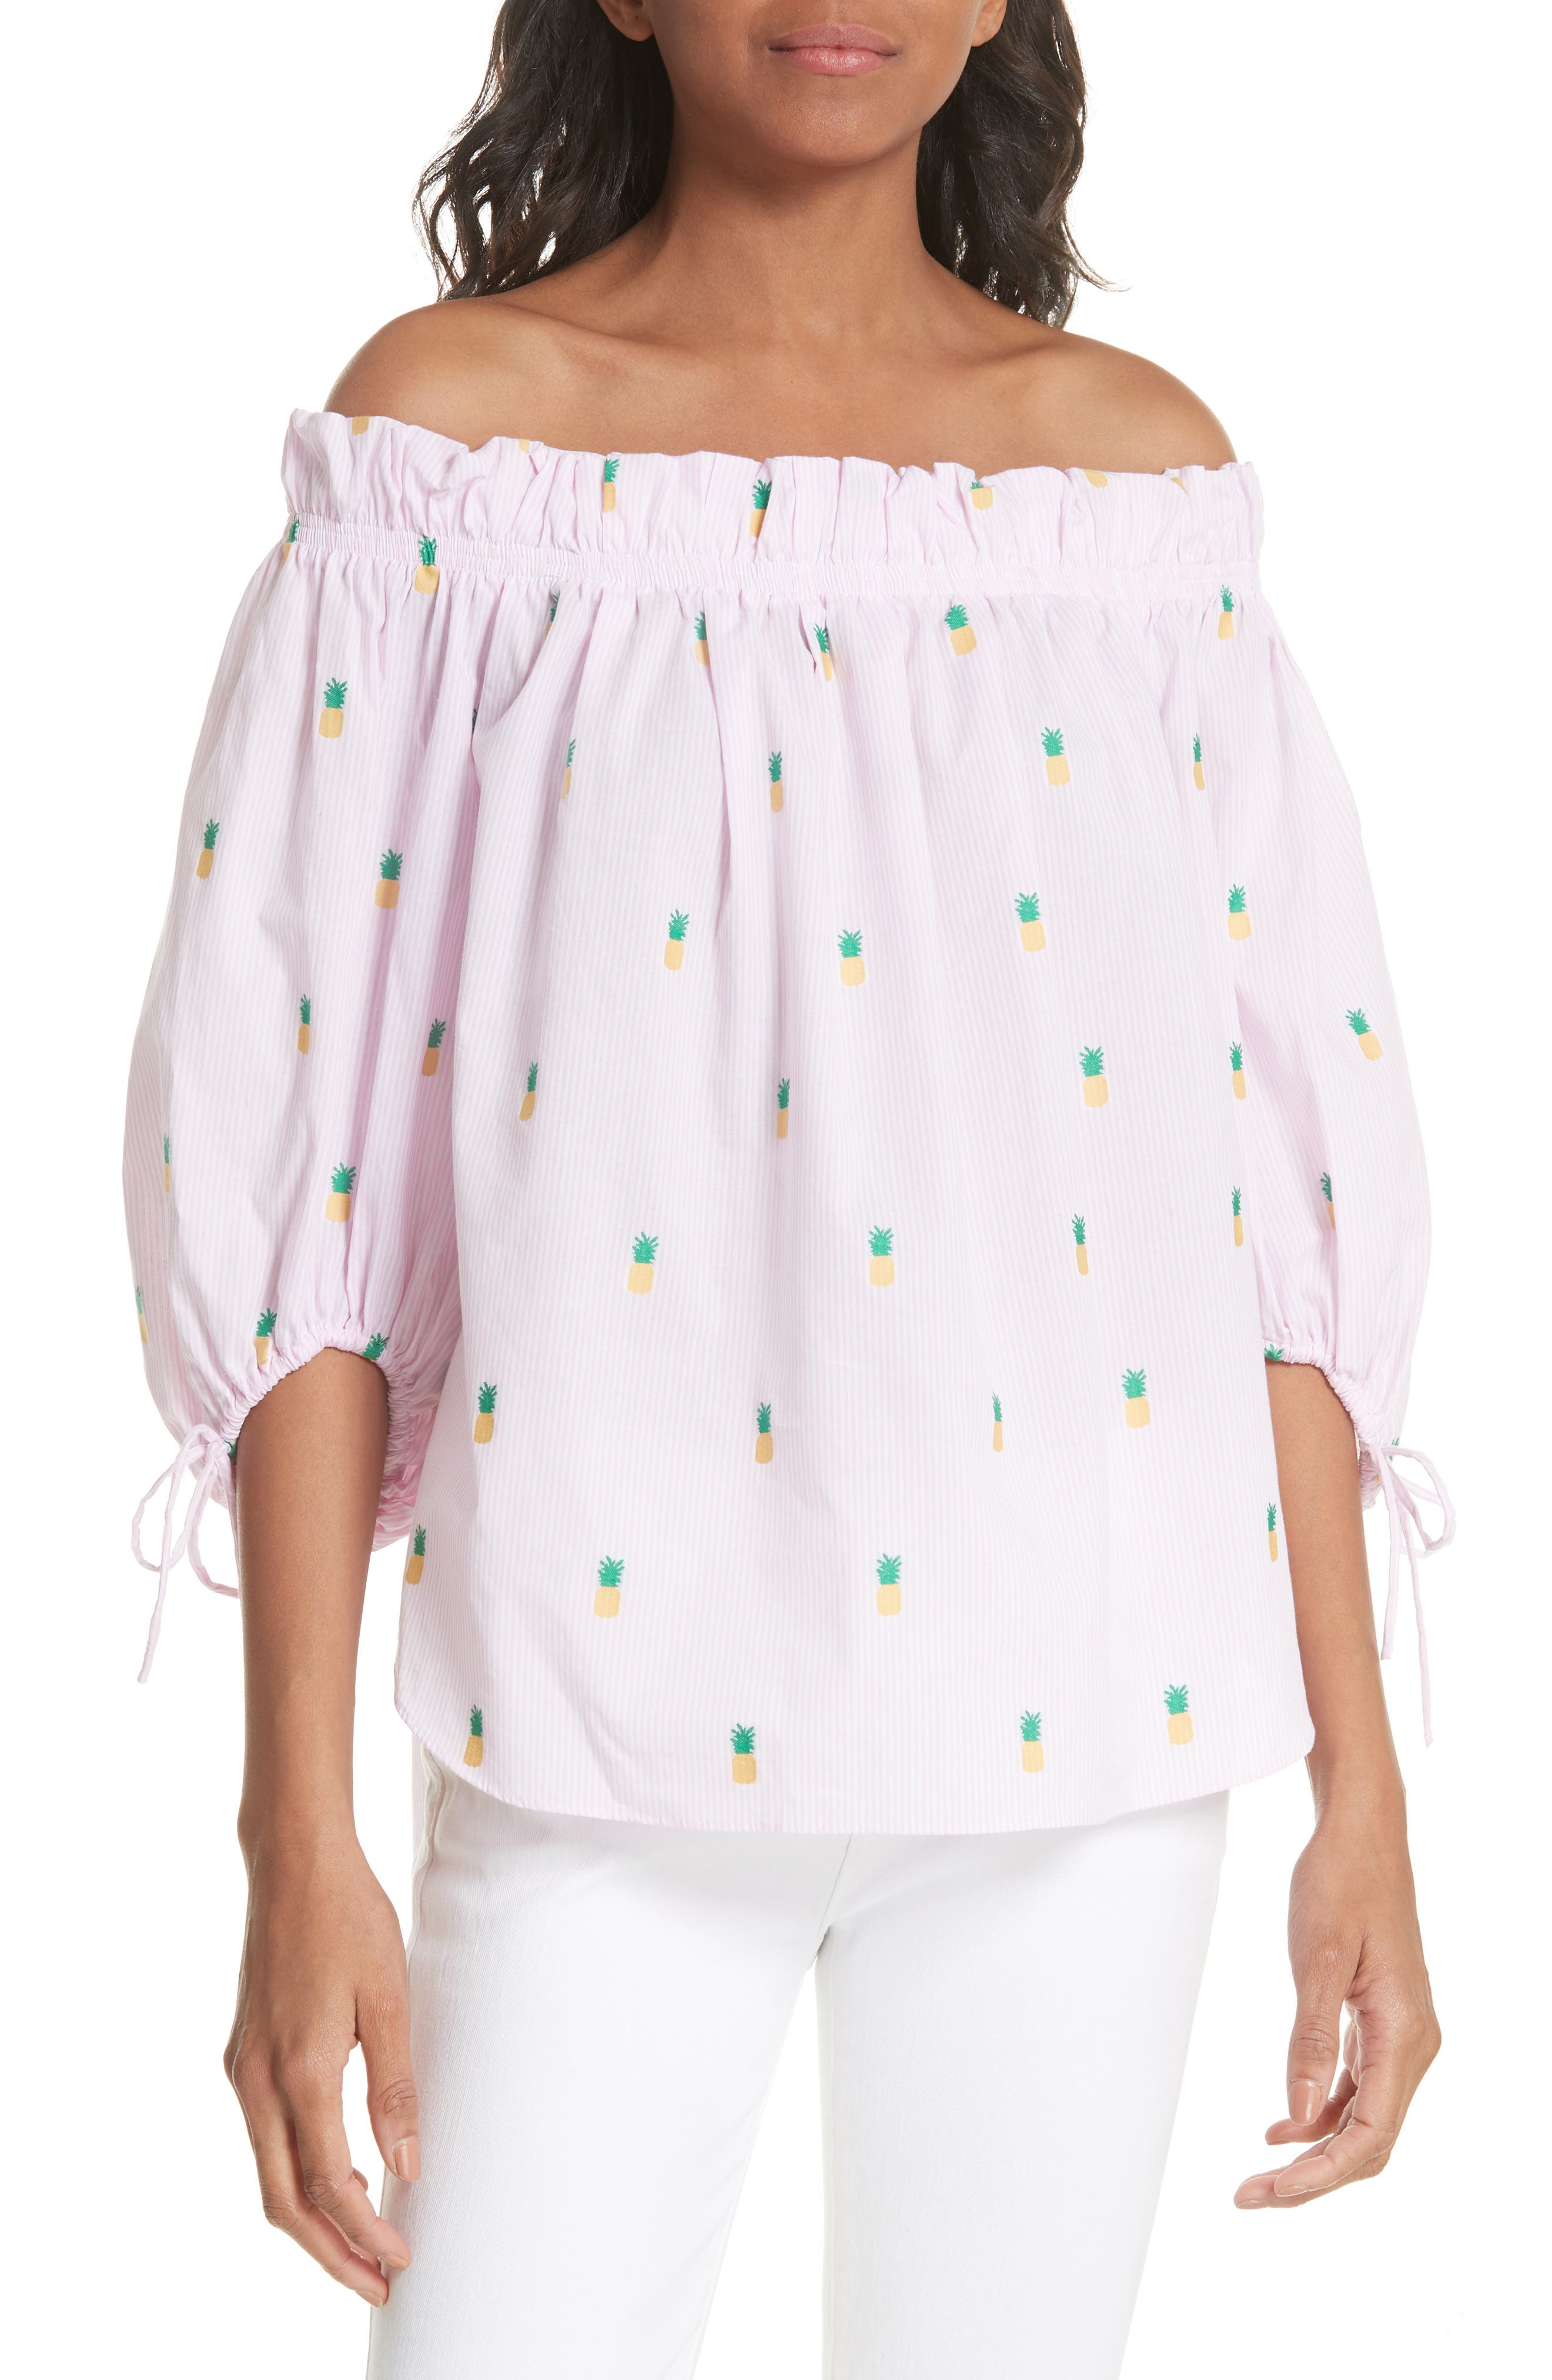 Pineapple Pinstripe Off The Shoulder Cotton Top by Kate Spade New York